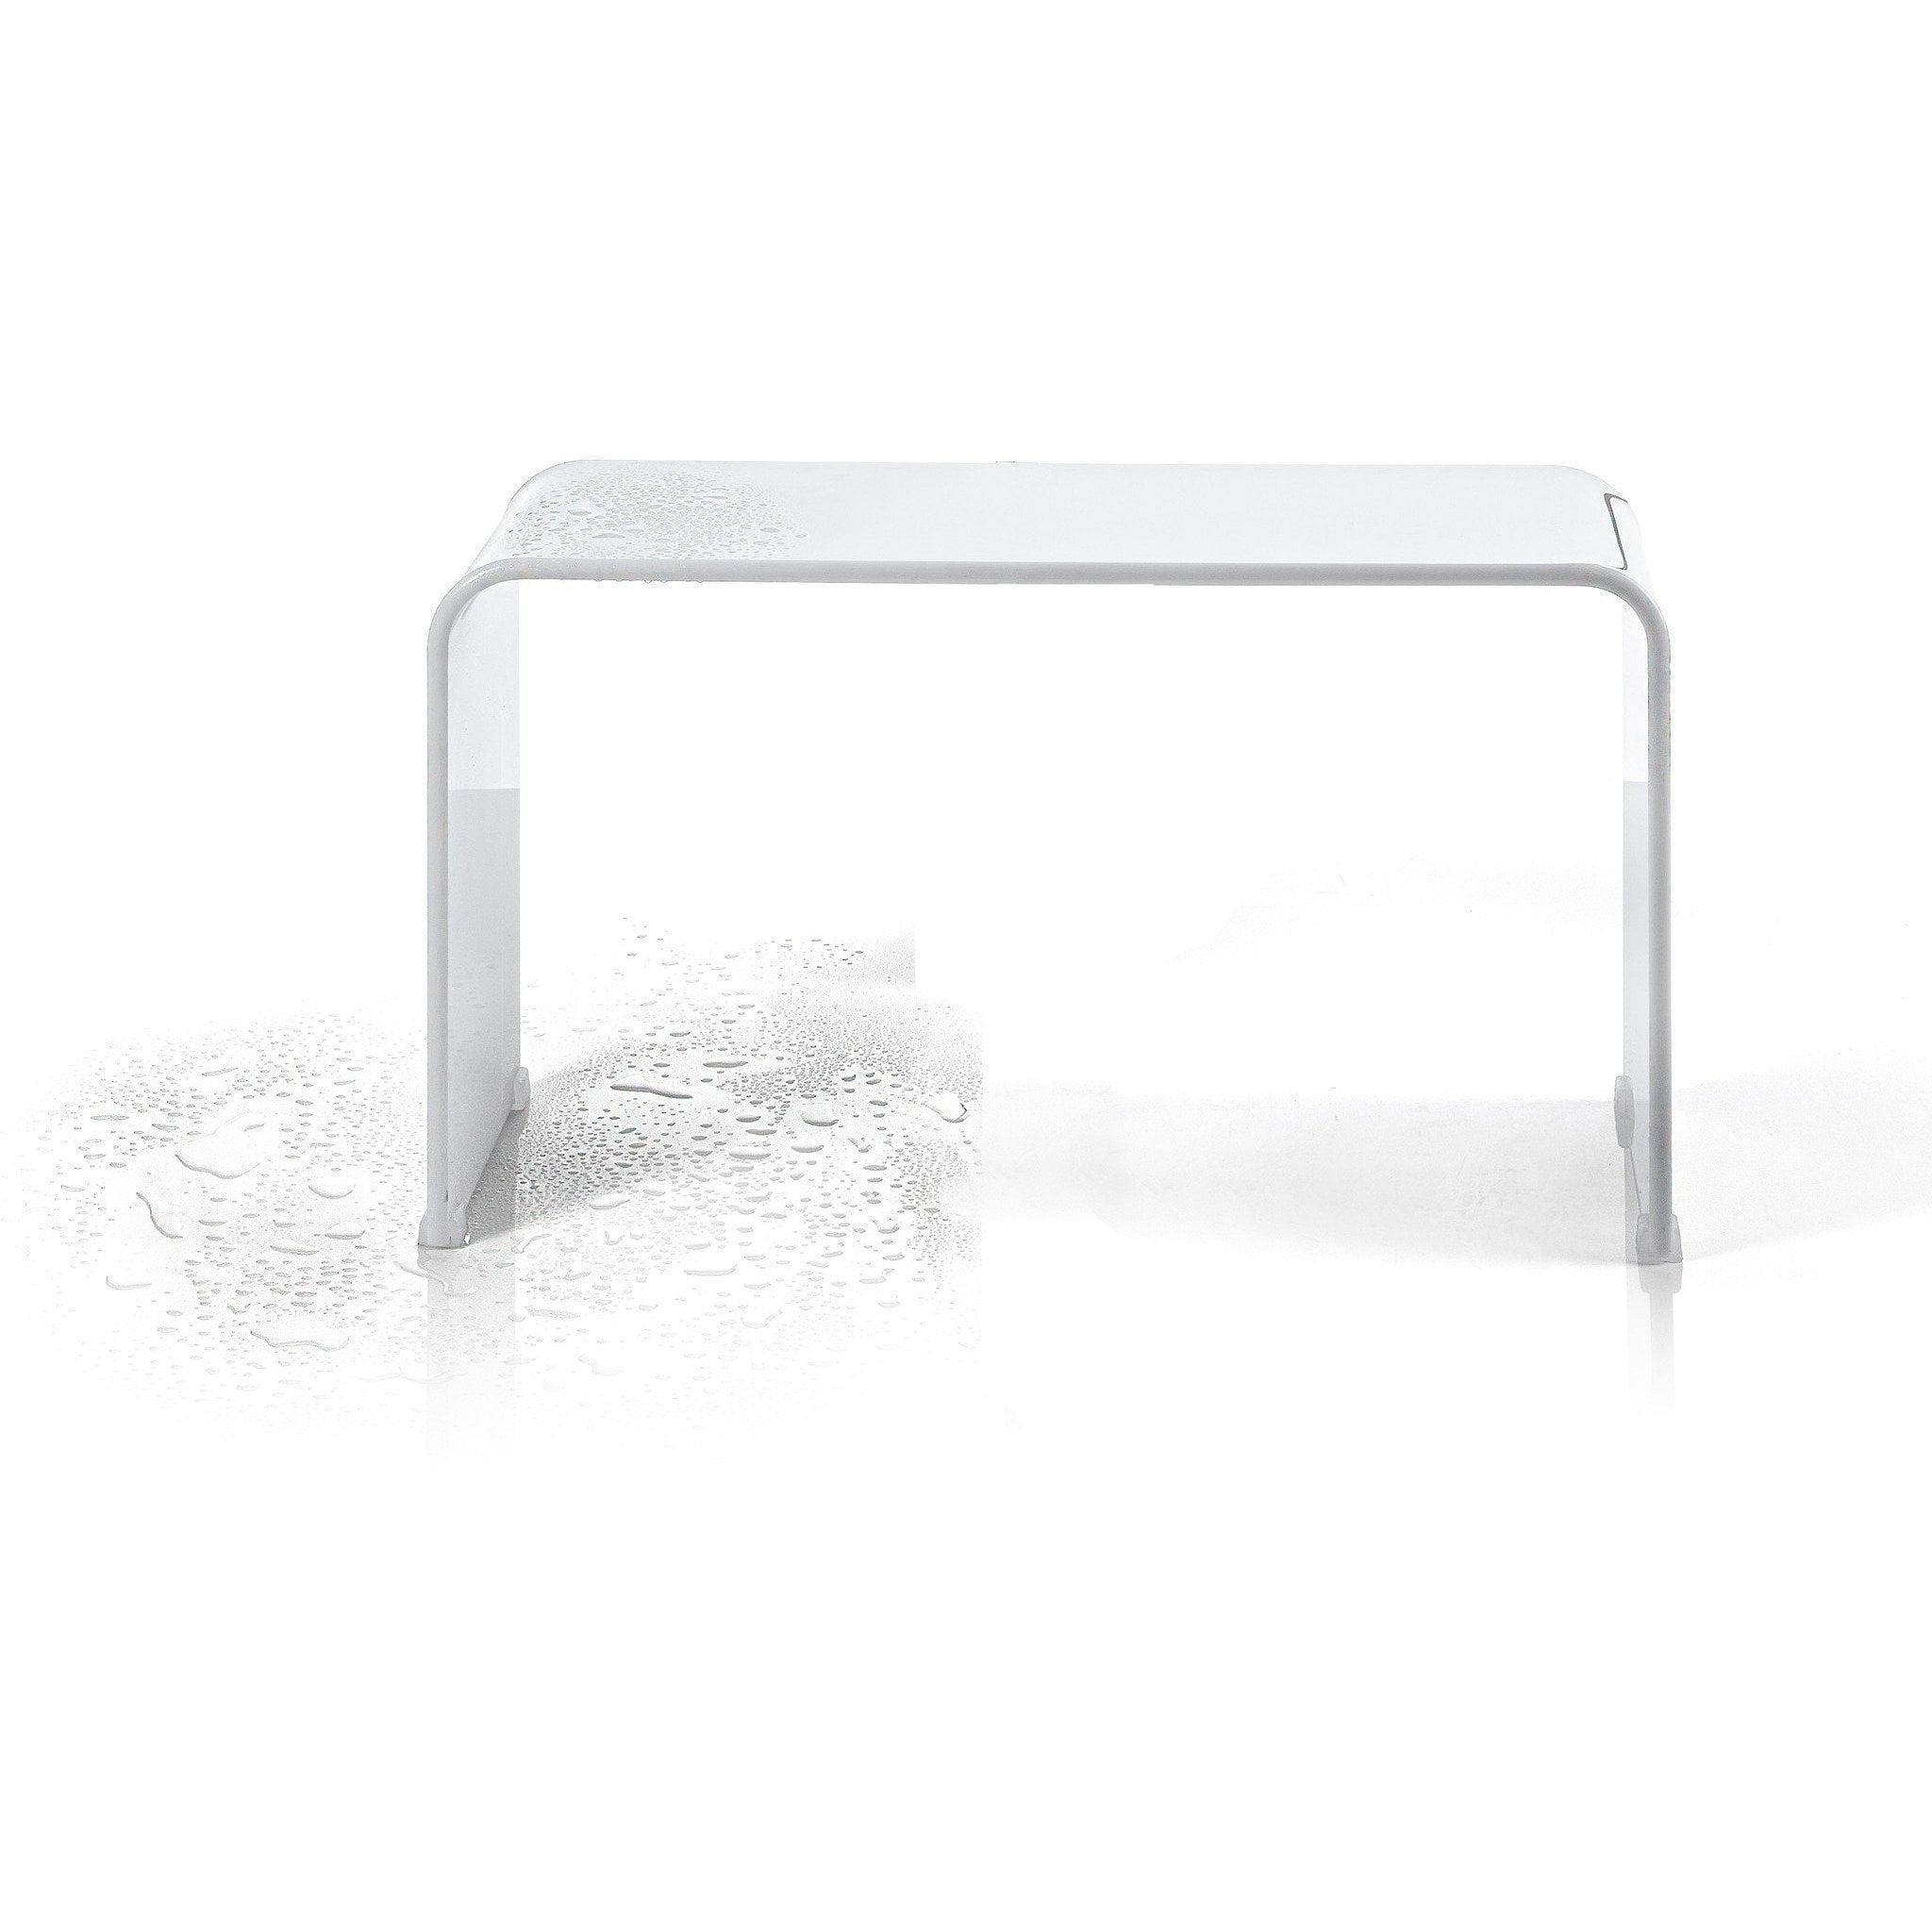 DW 80 XL Shower Bench Backless chair for Bathroom Shower Seat, Shiny Acrylic - AGM Home Store LLC